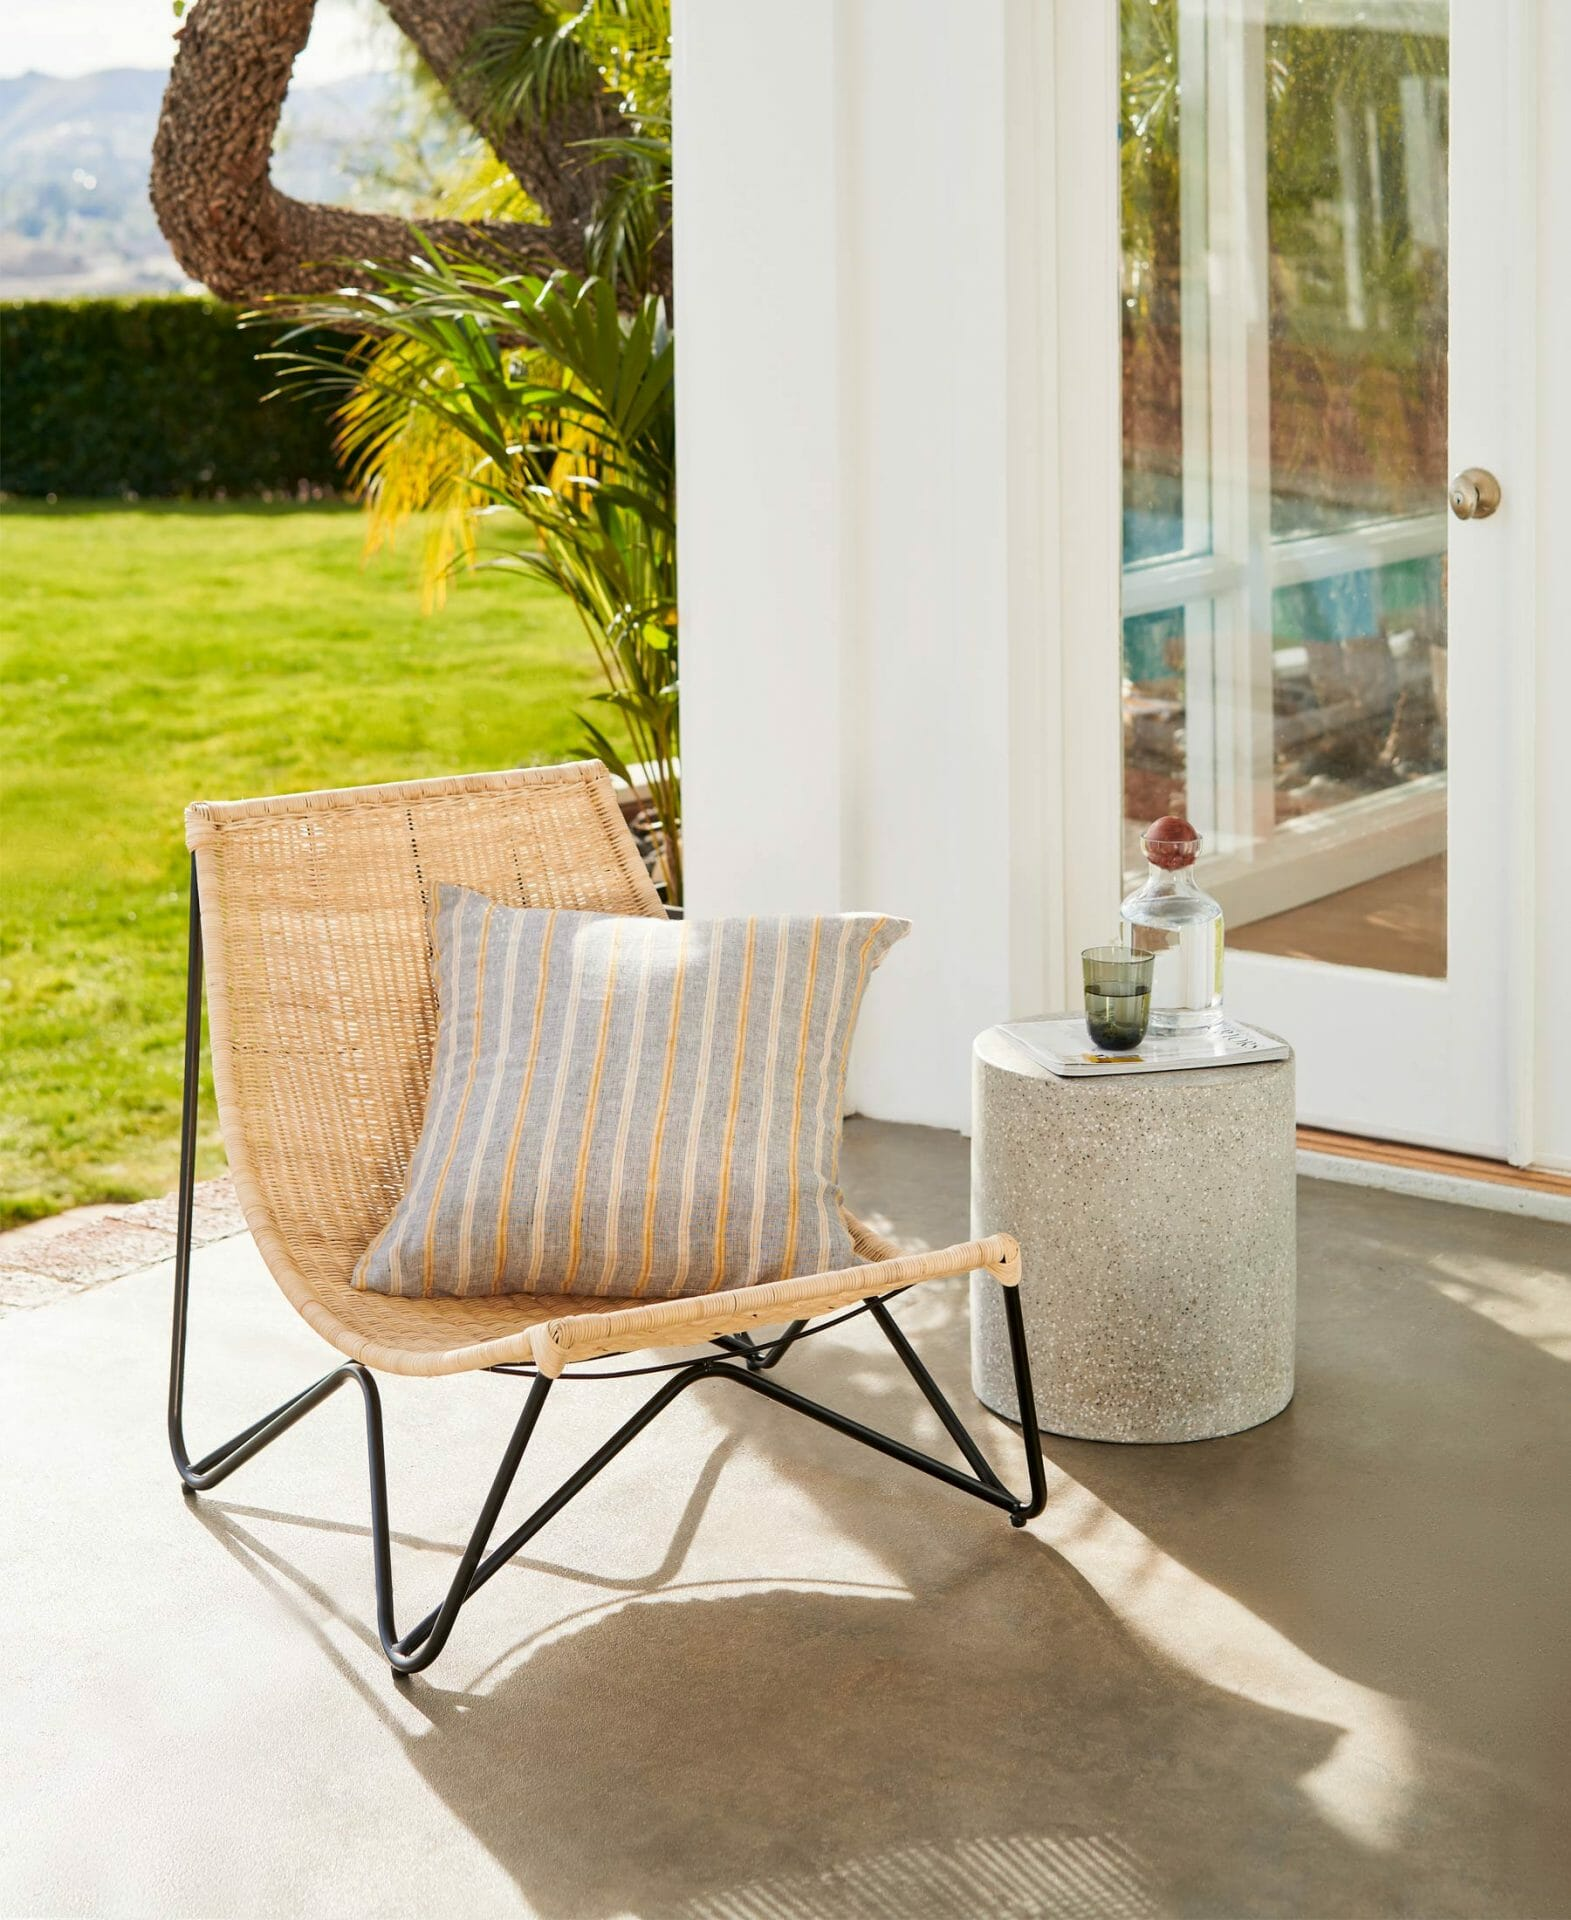 The rattan Ikast Lounge Chair is shown with an accent pillow and side table.